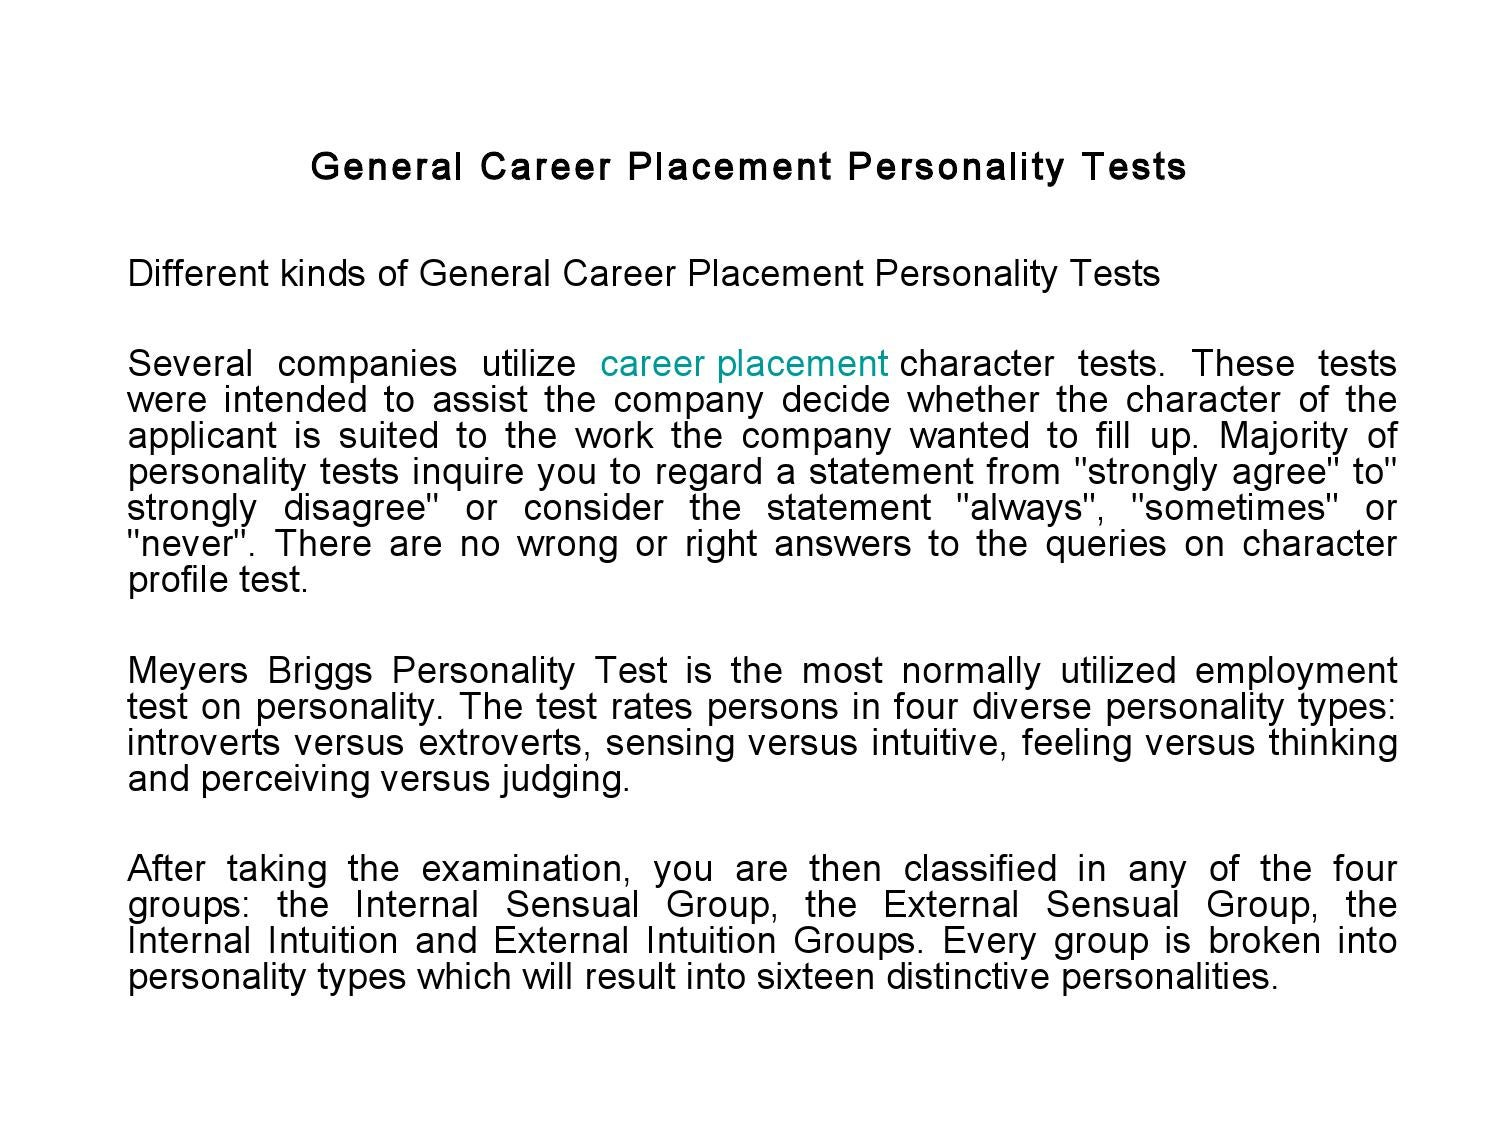 General Career Placement Personality Tests by crystal cane - issuu